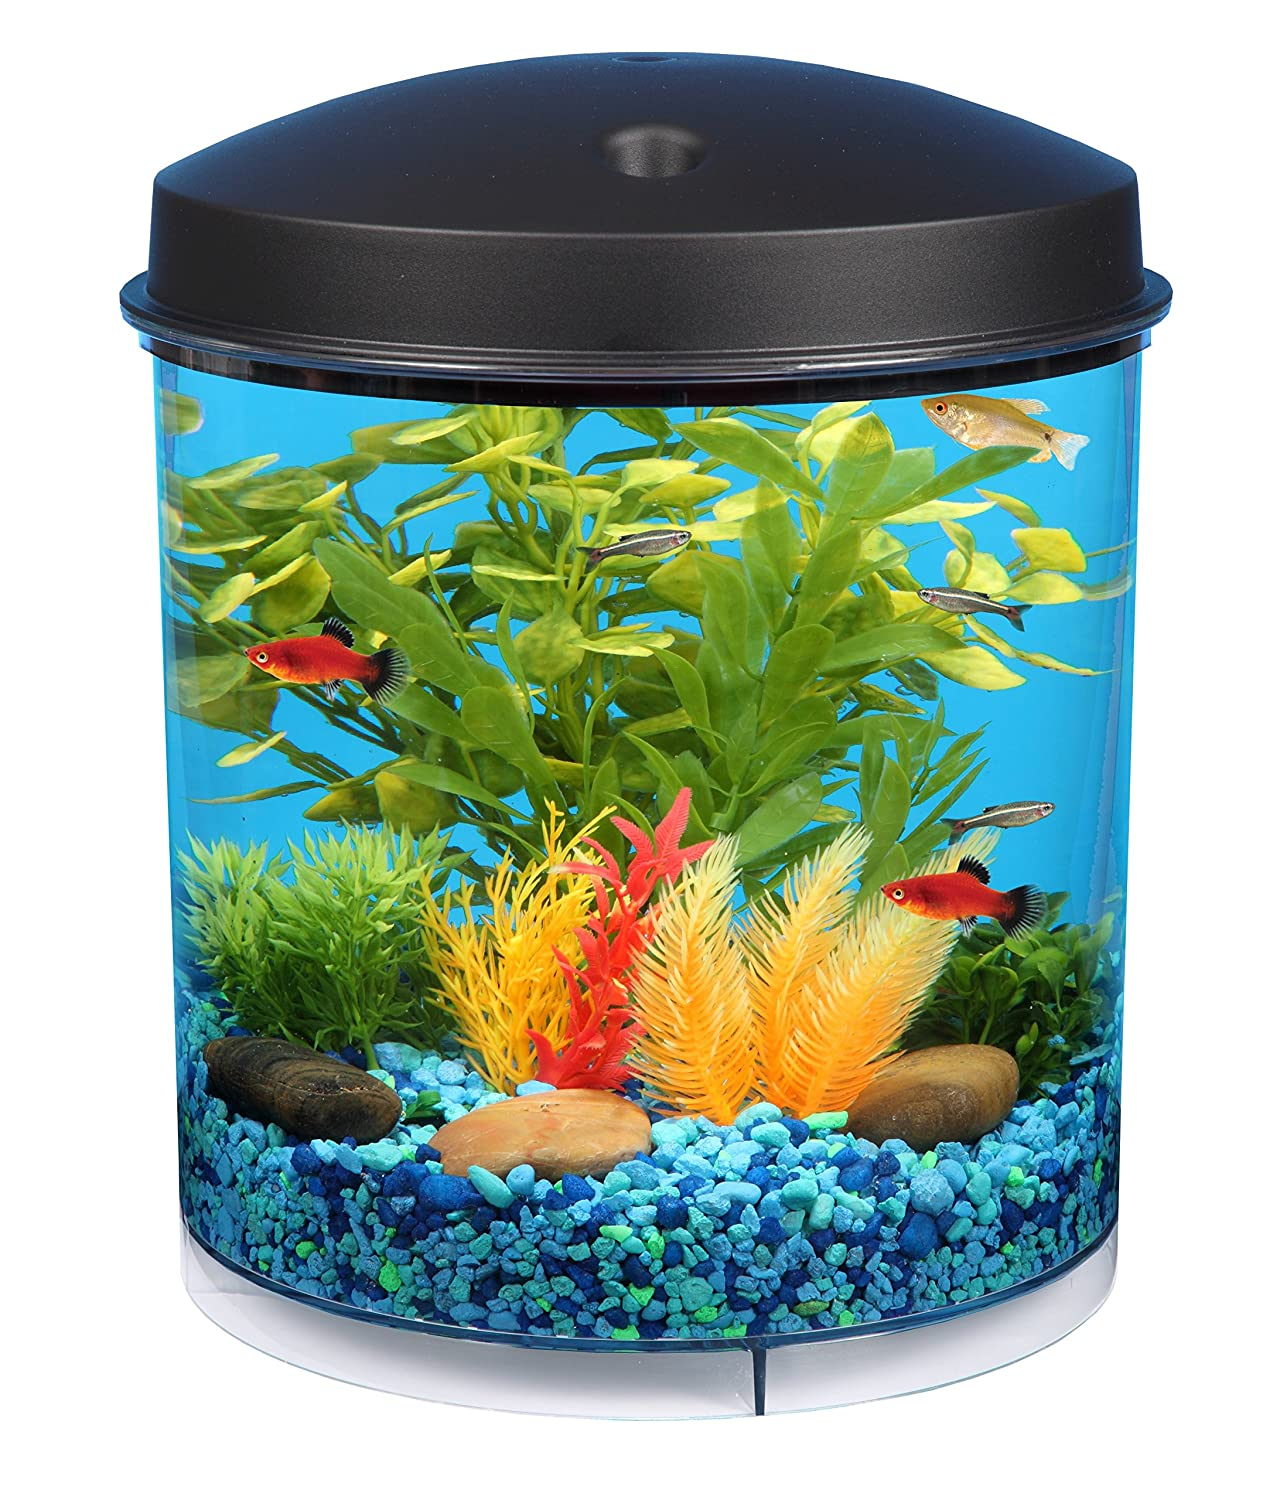 Fish aquarium in brisbane - Aquarium Fish Tank Price